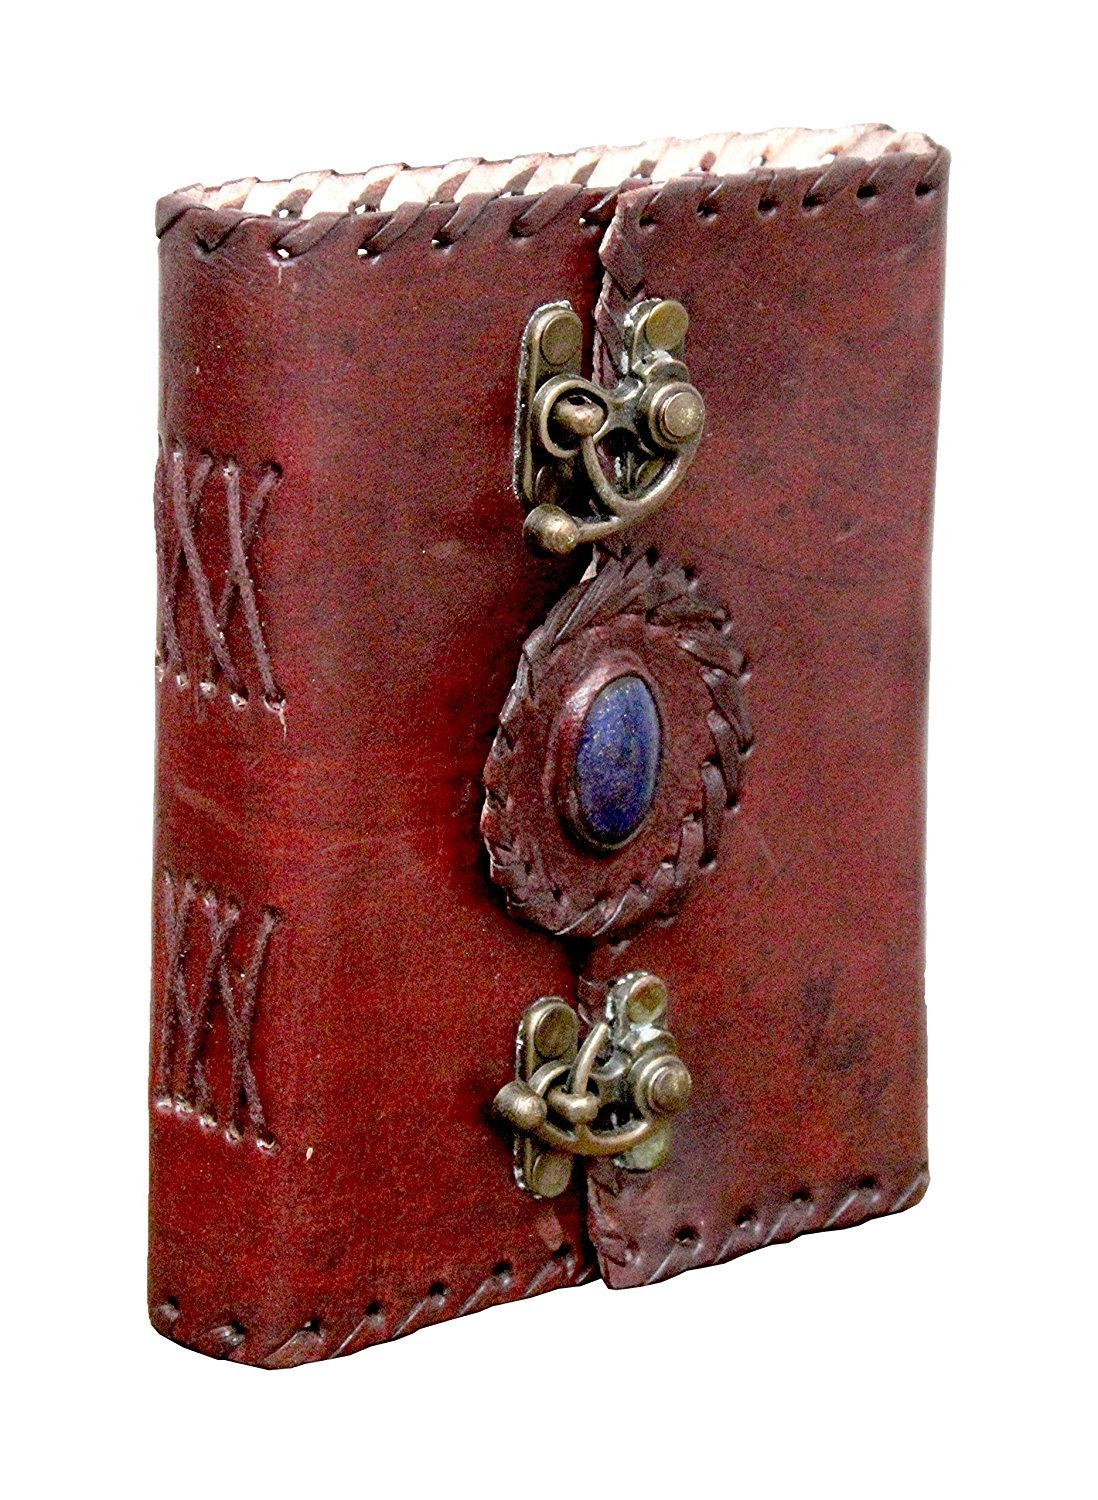 TUZECH Pure Genuine Real Vintage HunterLeather Diary Leather Journal Handmade paper For office Home to Write Poem Daily Update With attractive 2 Metal Lock and Engraved shinning stone 7 Inches